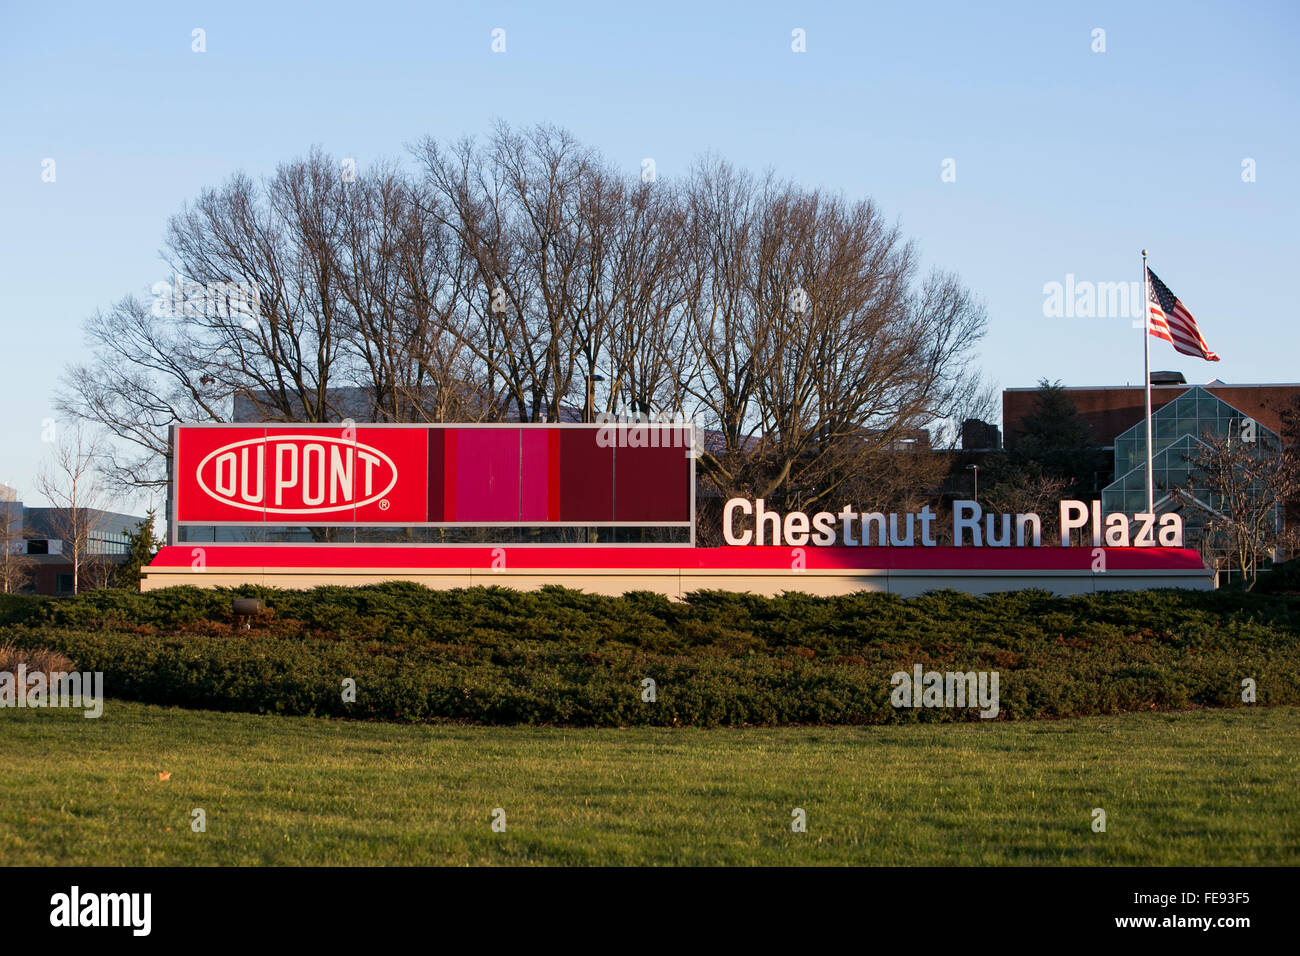 A logo sign outside of the Chestnut Run Plaza headquarters campus of DuPont in Wilmington, Delaware on January 3, - Stock Image